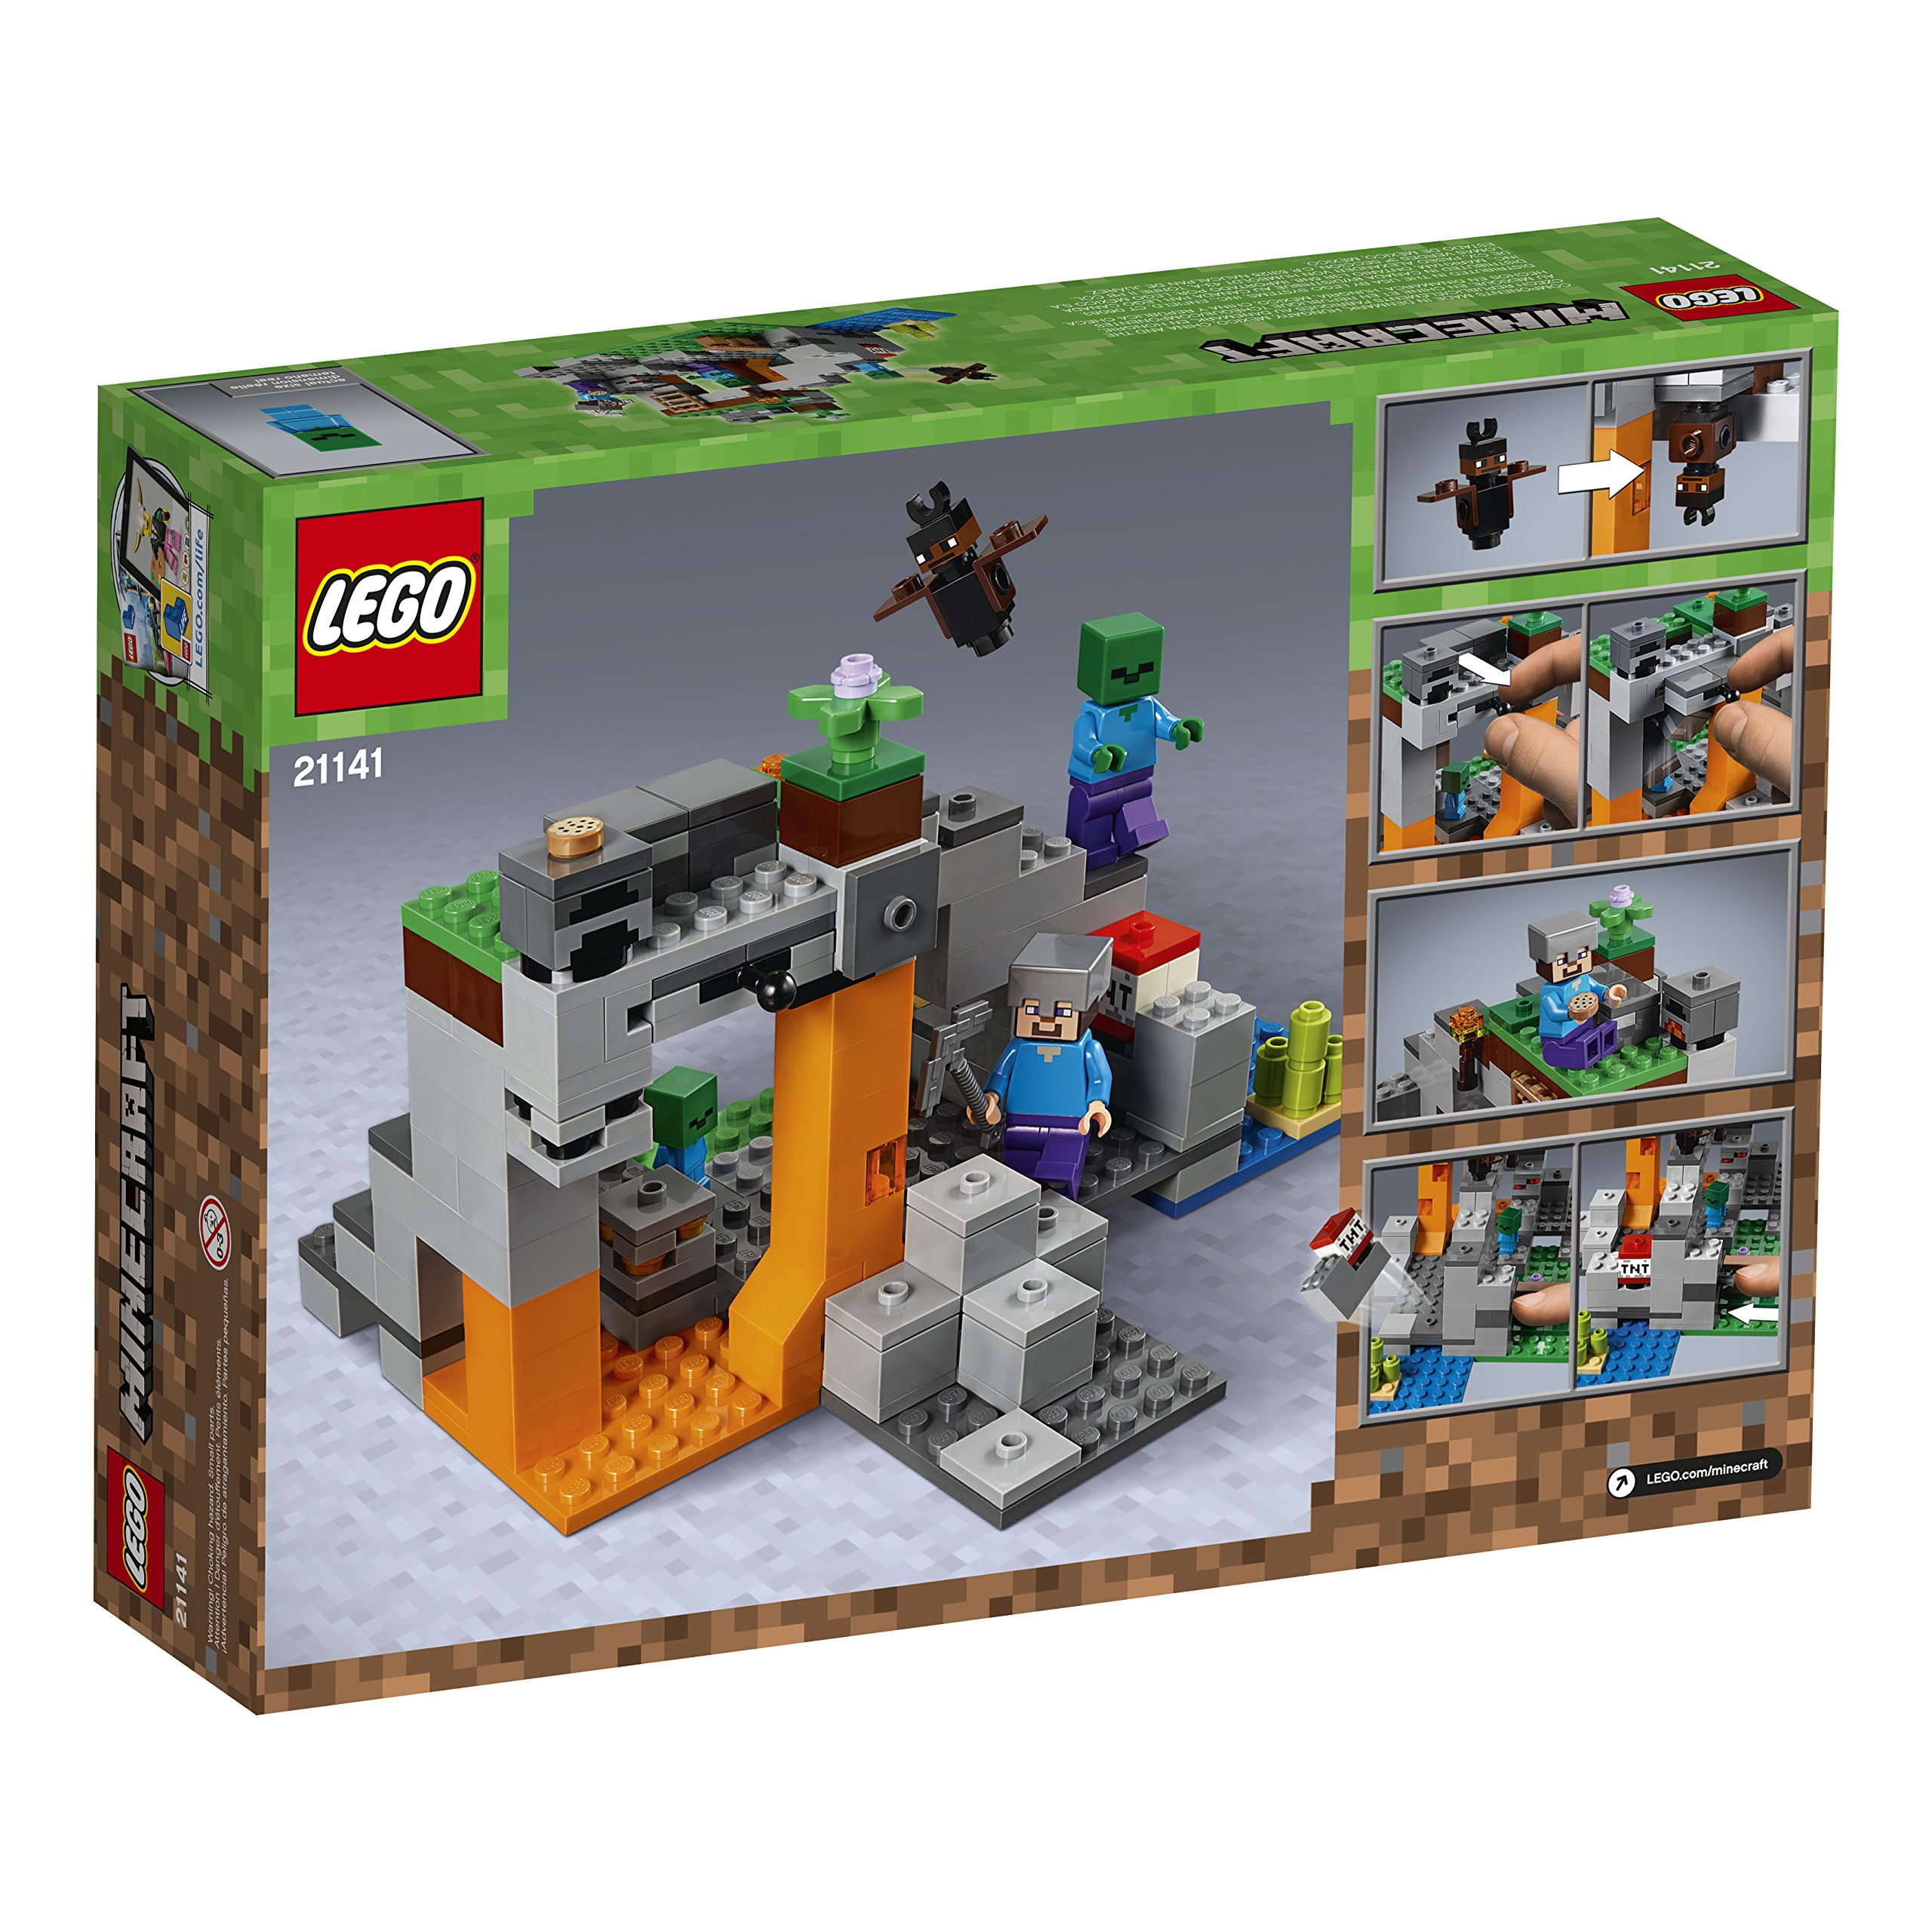 LEGO Minecraft The Zombie Cave 21141 Building Kit (241 Piece) by LEGO (Image #5)